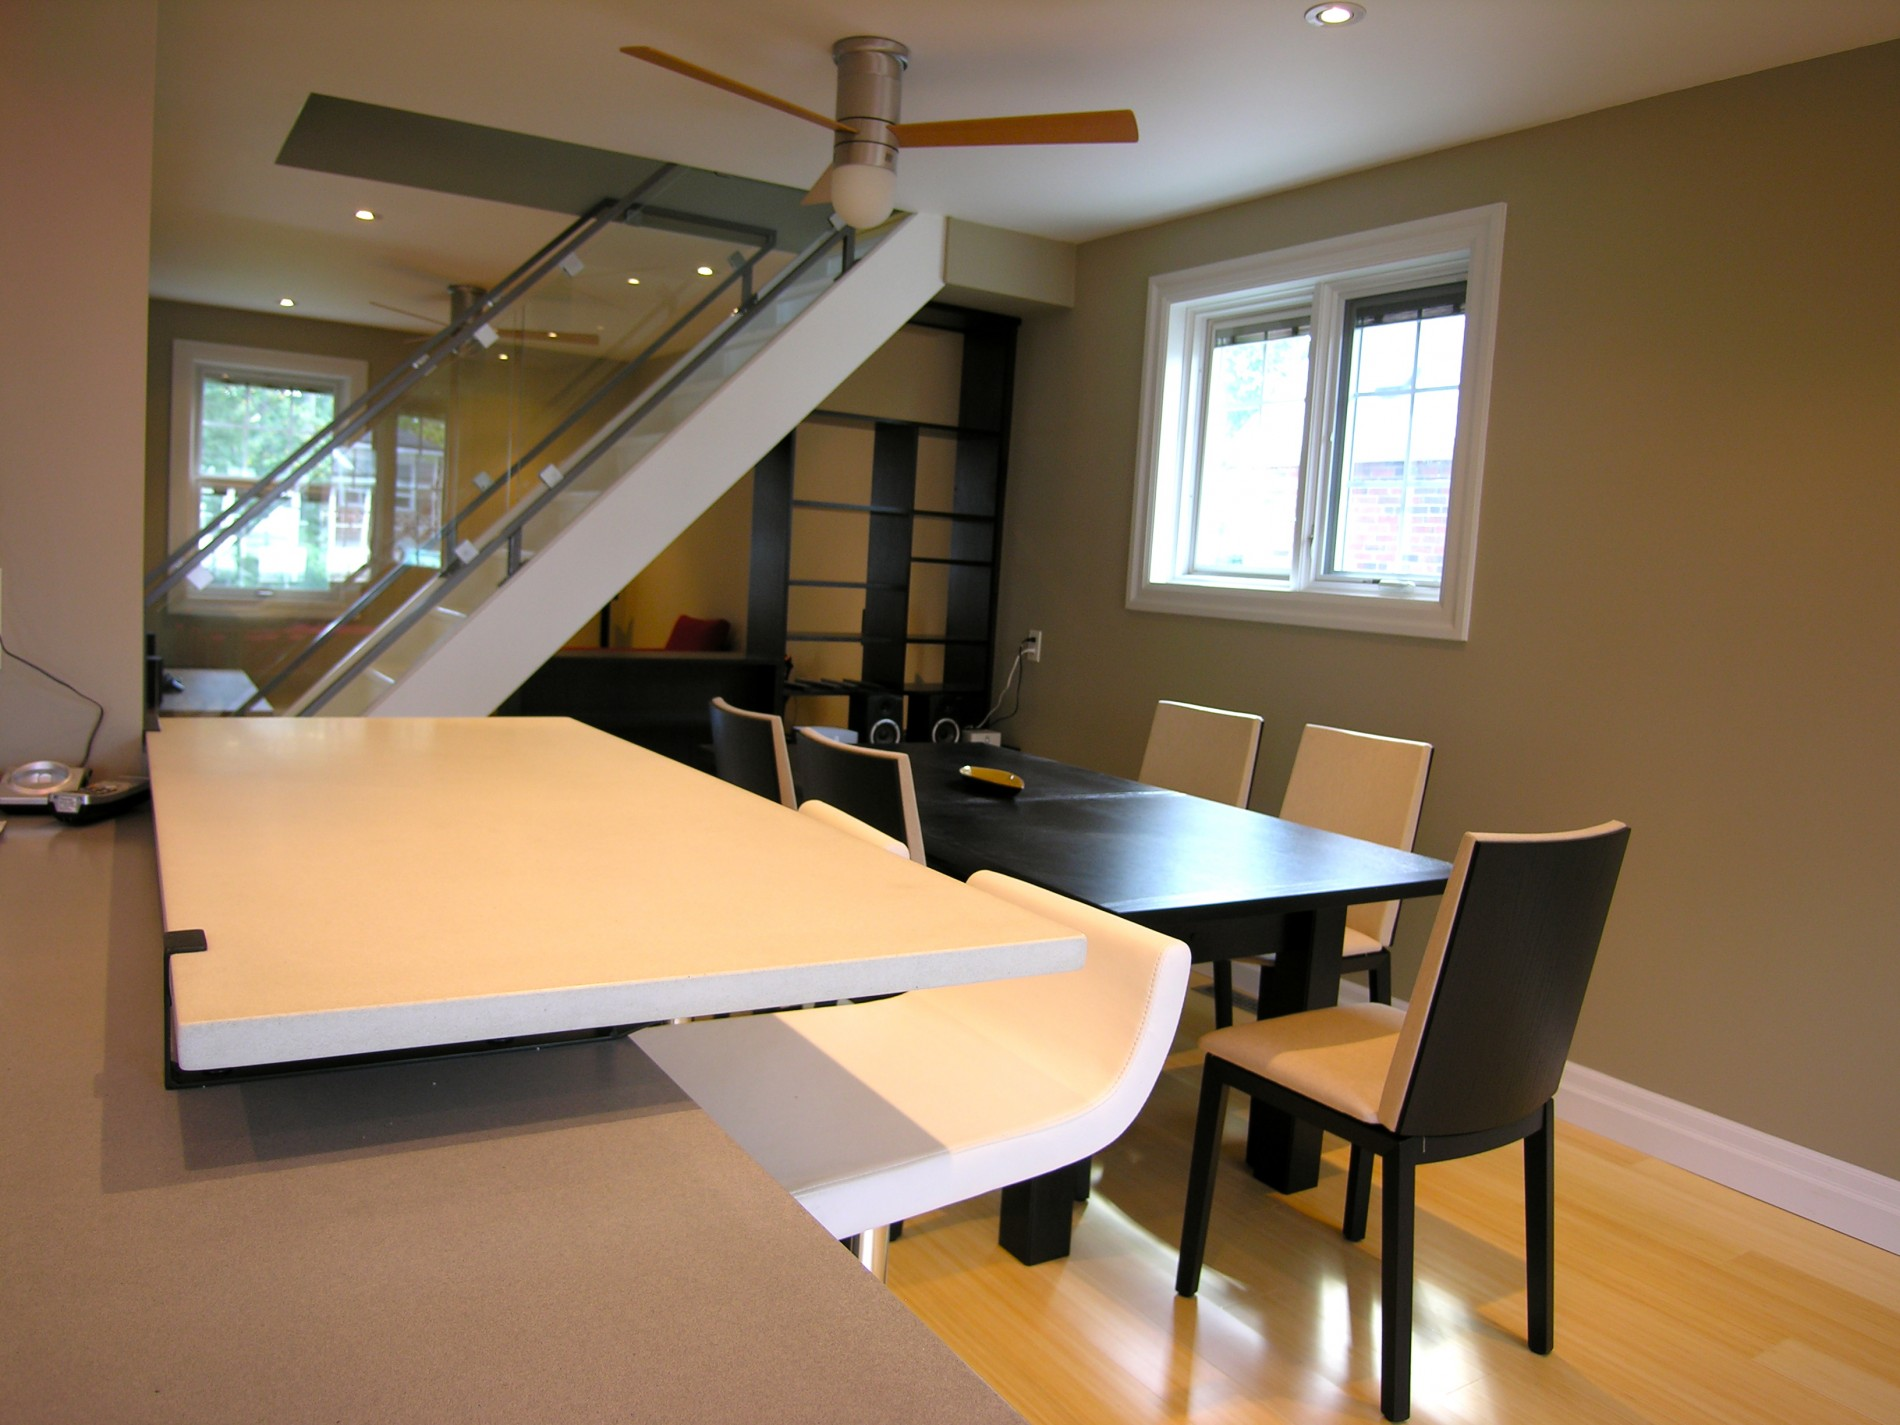 Amsterdam Ave. – East York Toronto Whole House Renovation - Featured Image